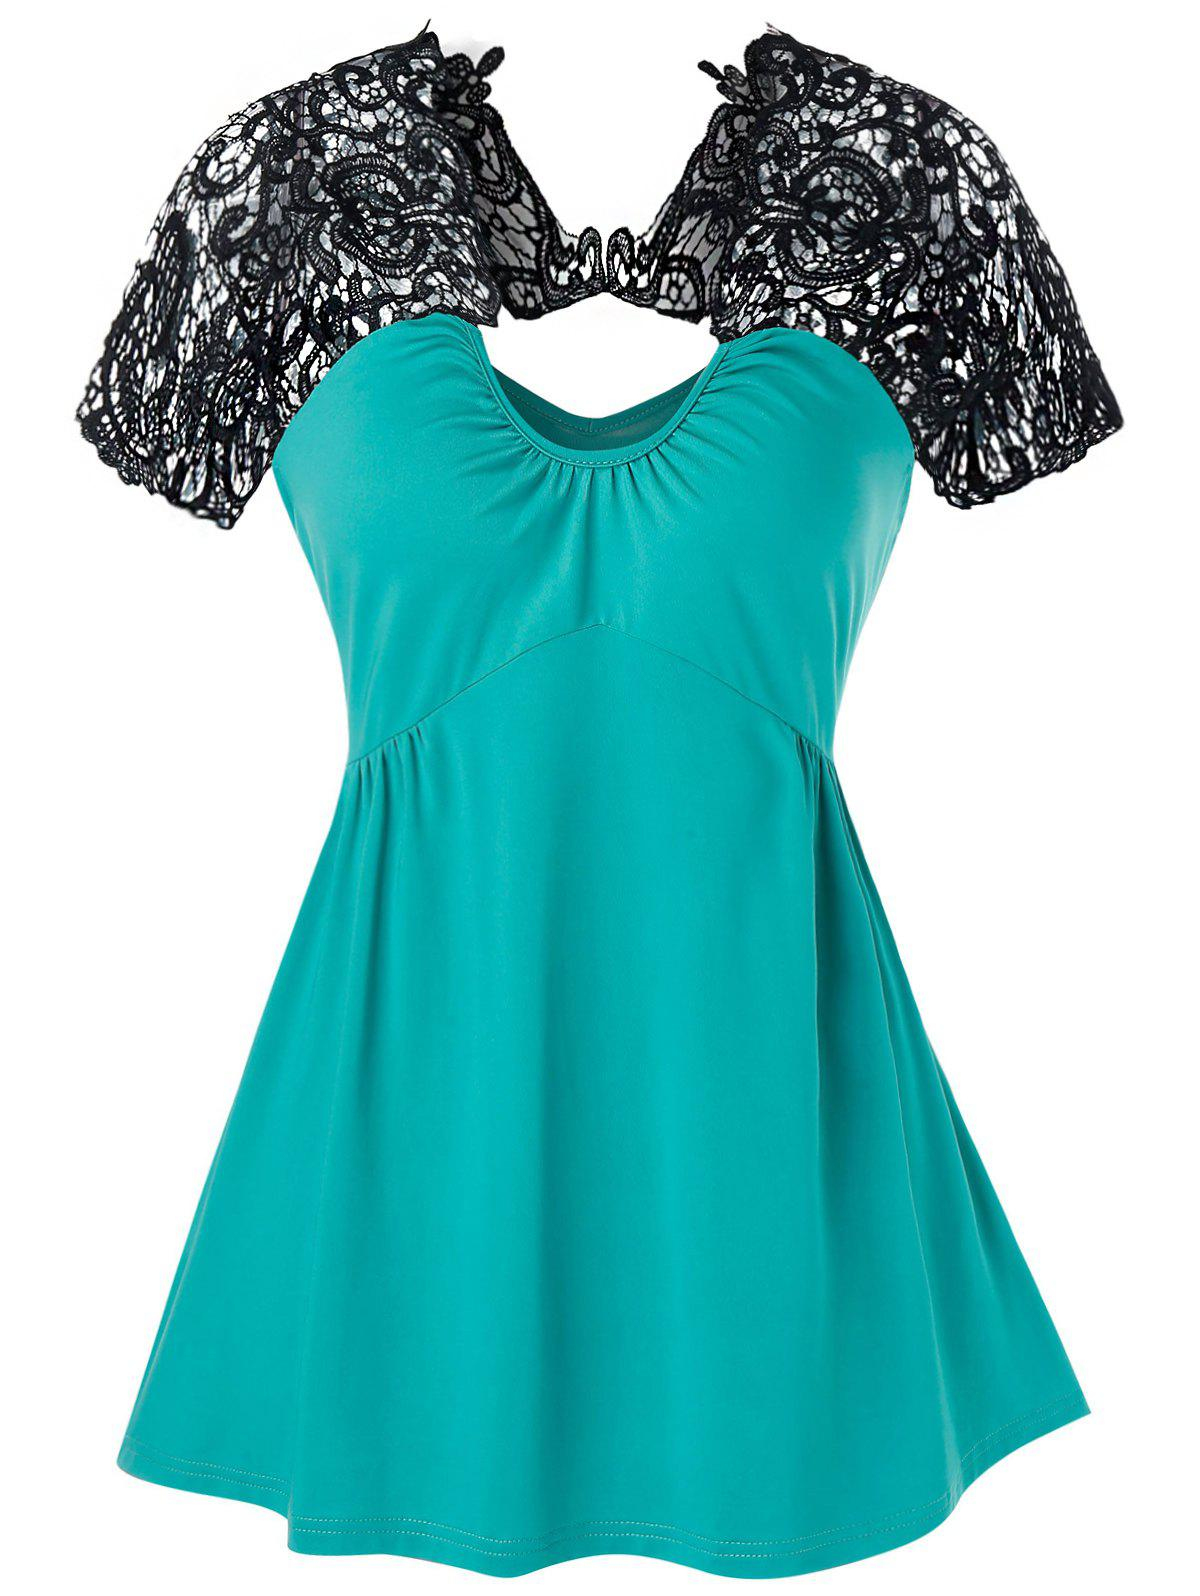 Lace Insert Flare Tank Top, Turquoise